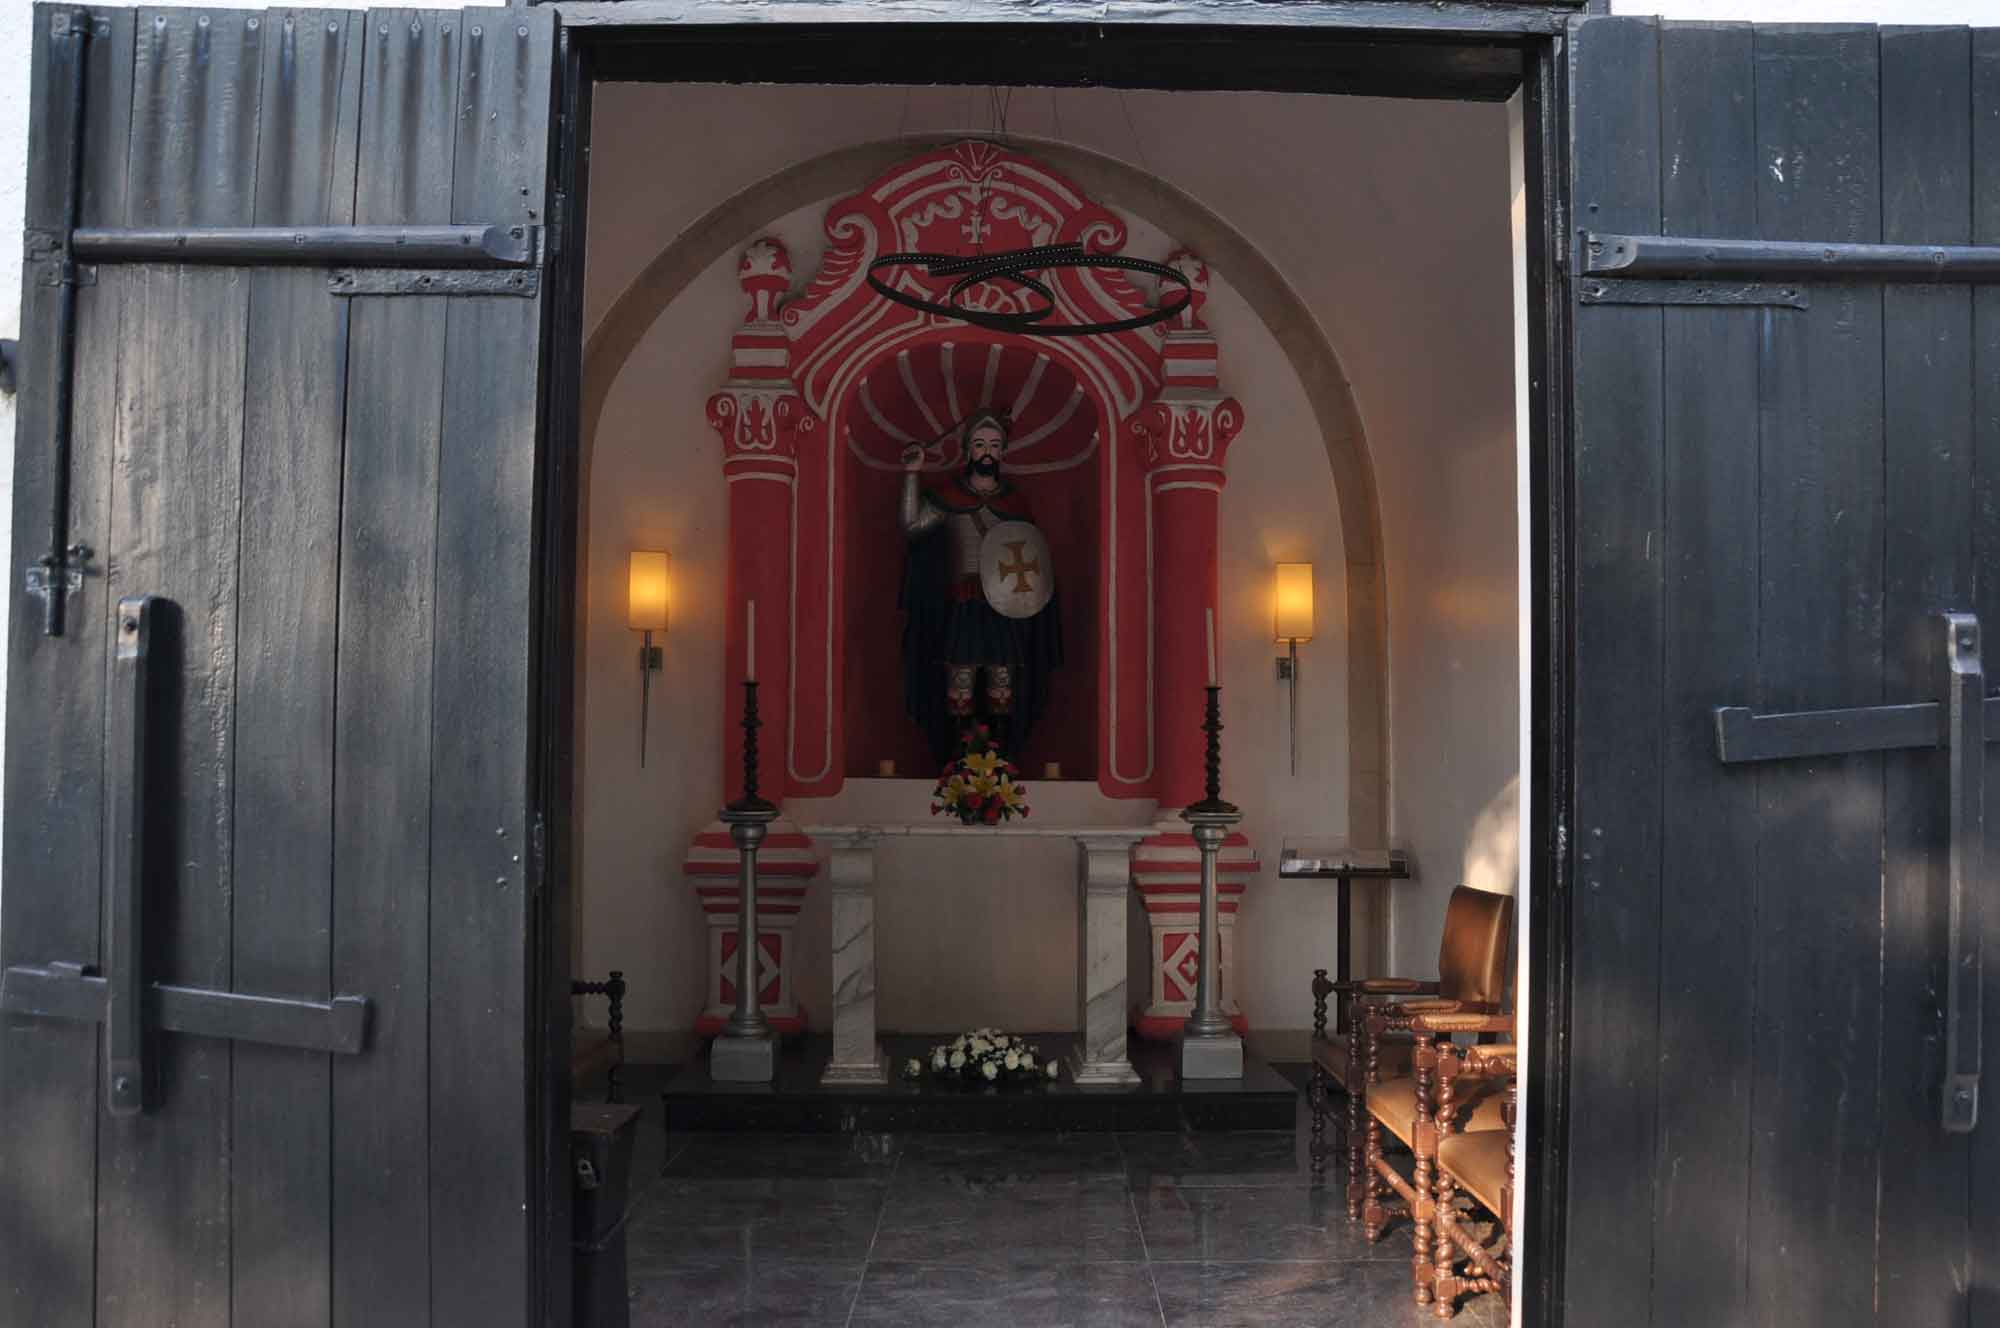 Chapel of Saint James Macau